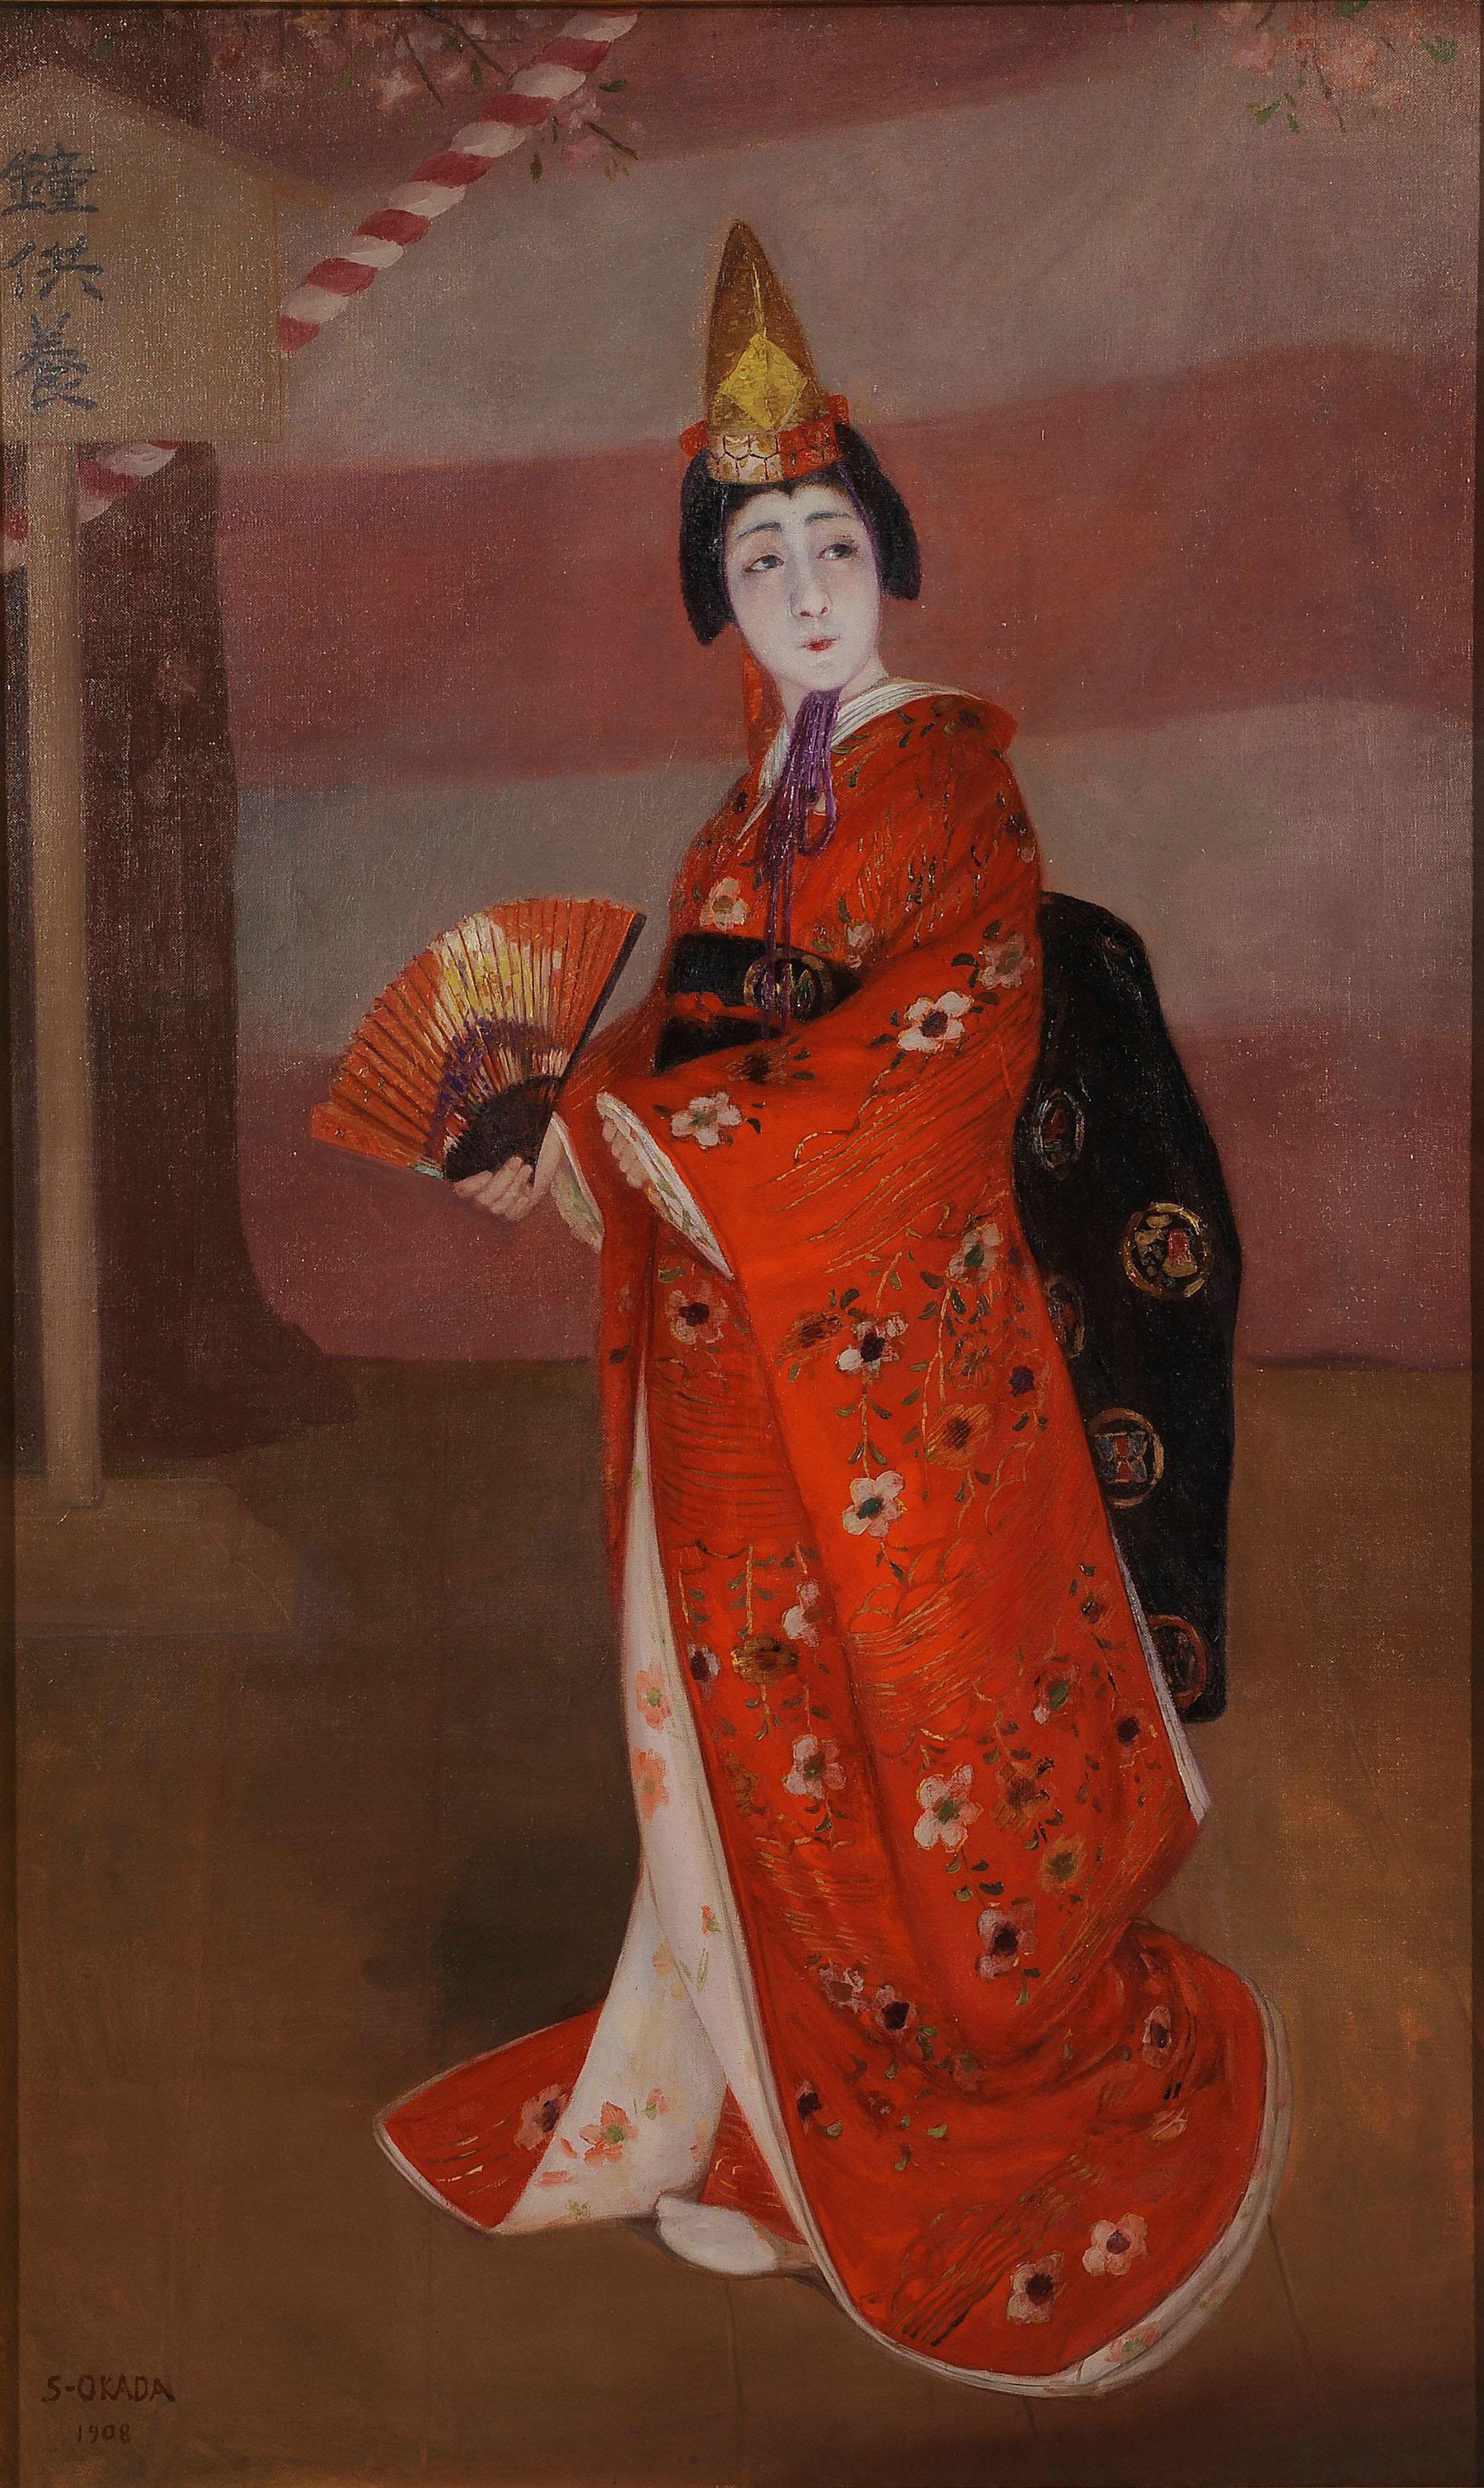 'Masterpieces of the Kabuki-za Theater Collection'